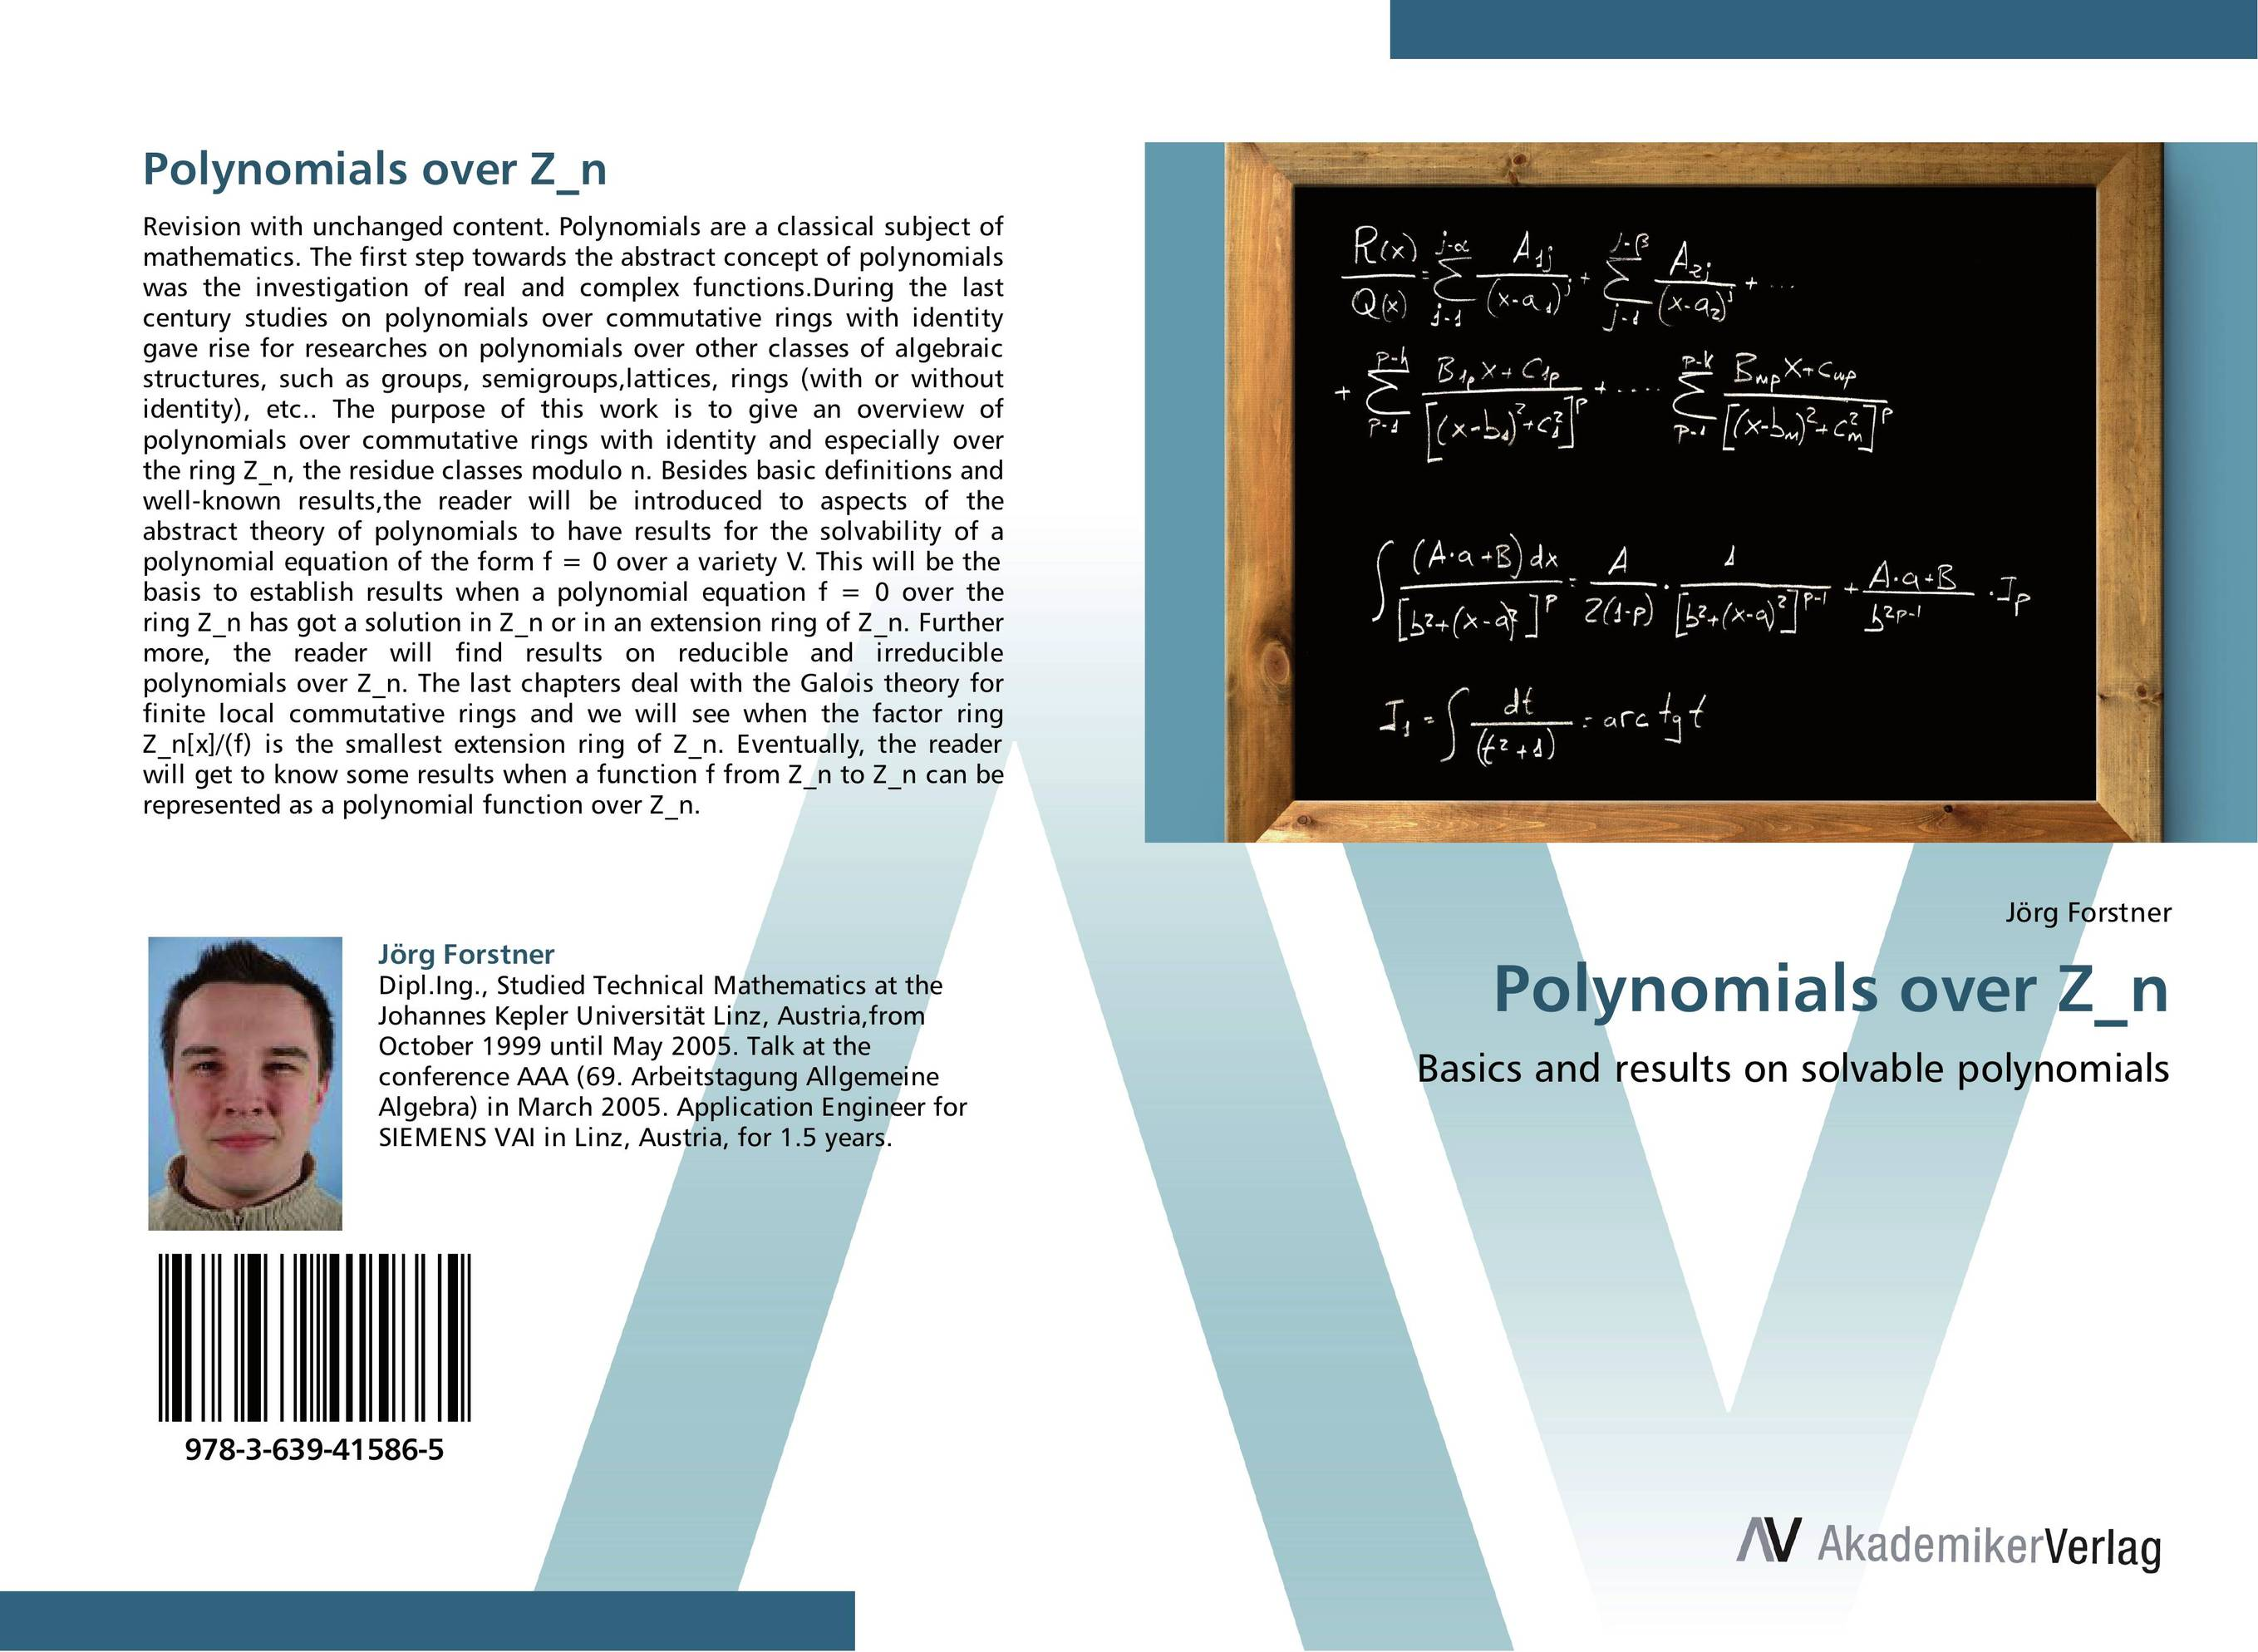 Polynomials over Z_n